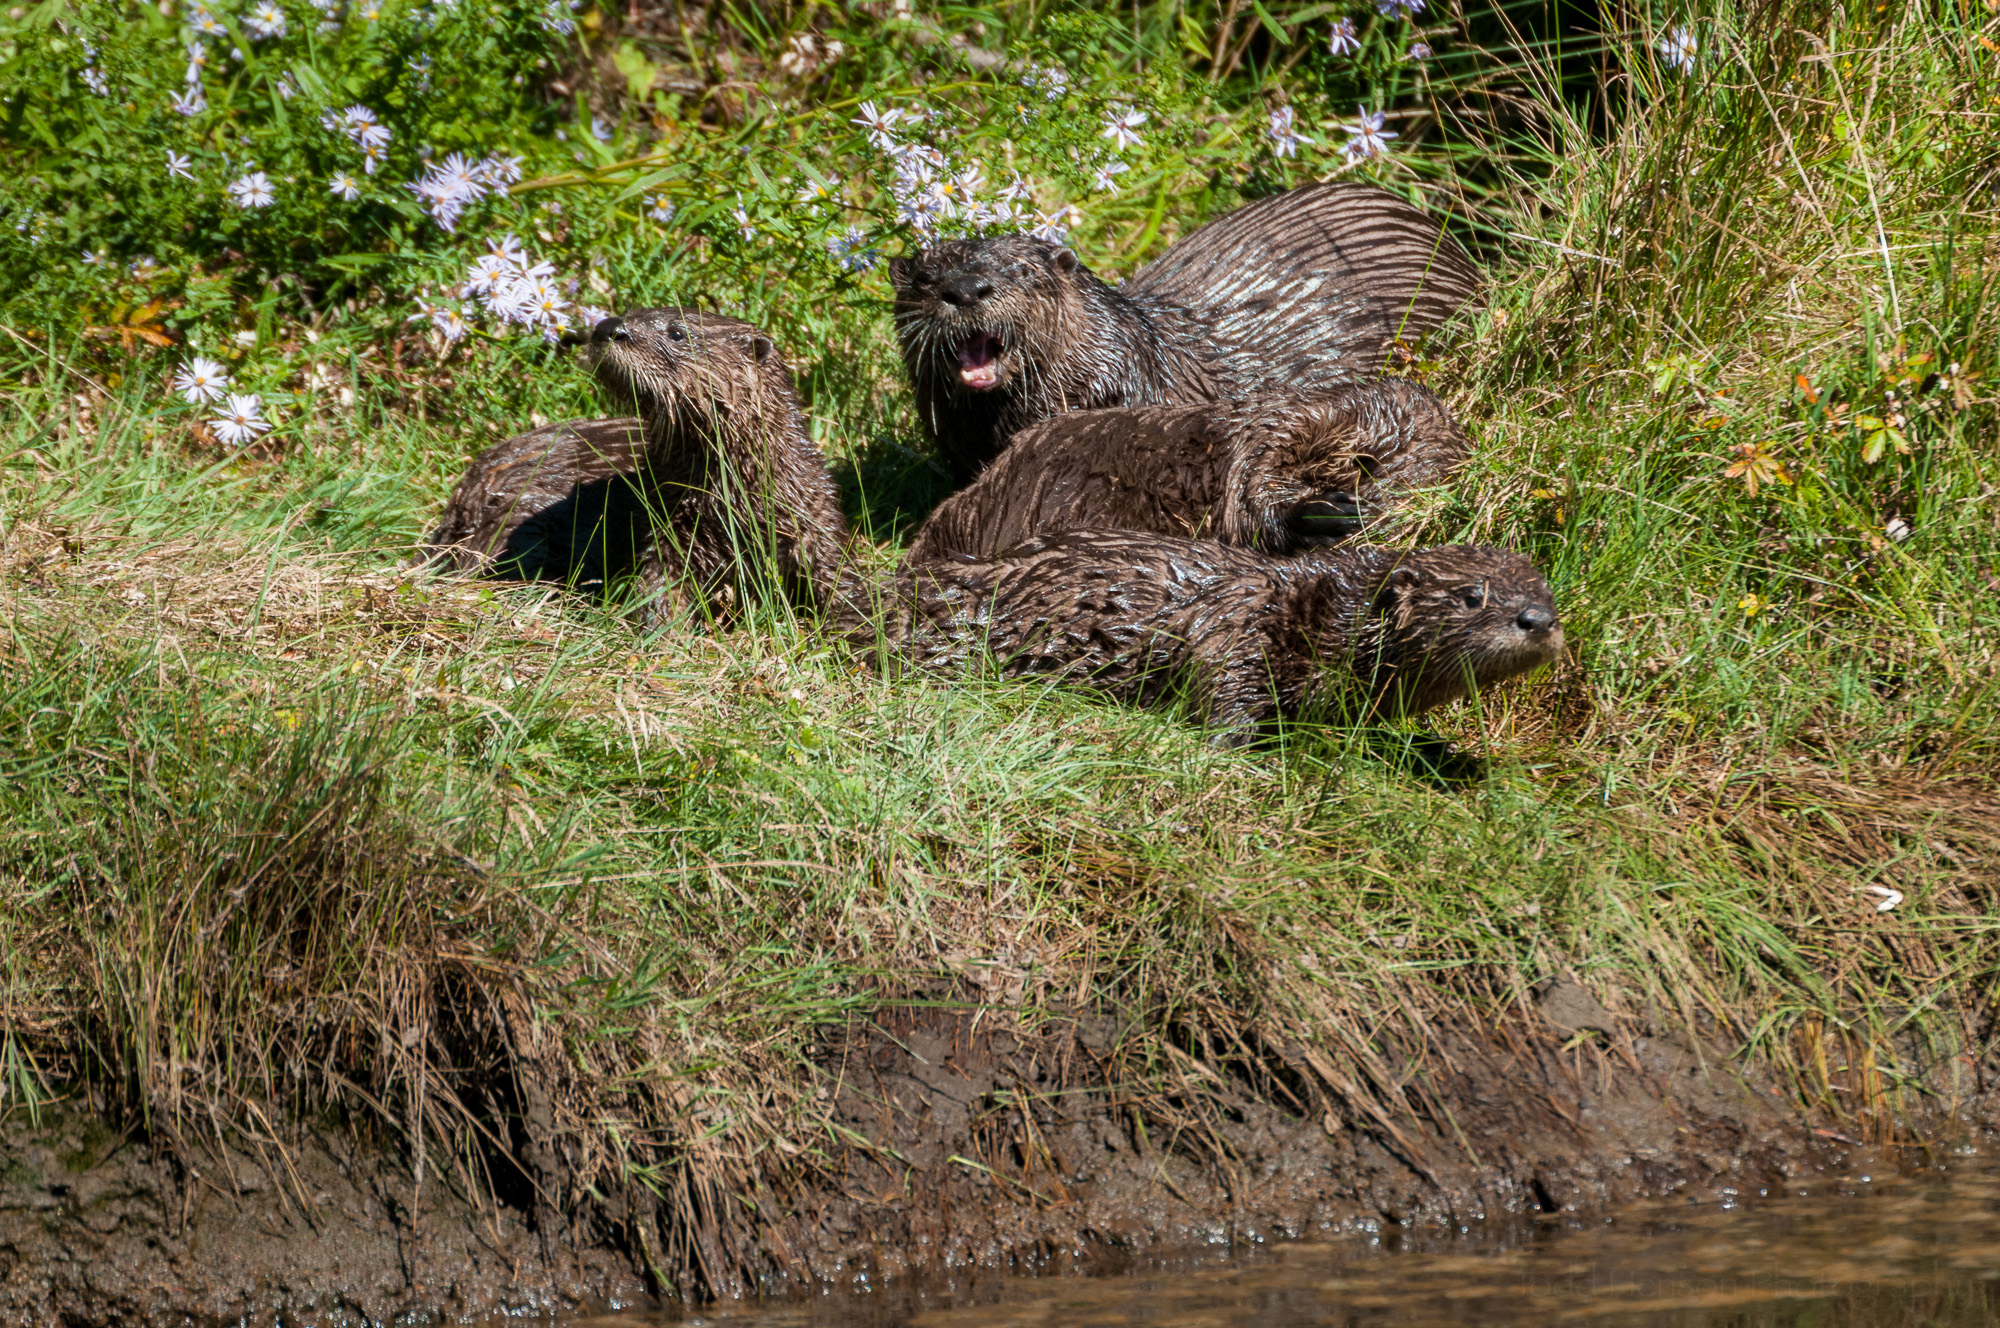 A mother and three young river otter on shore.